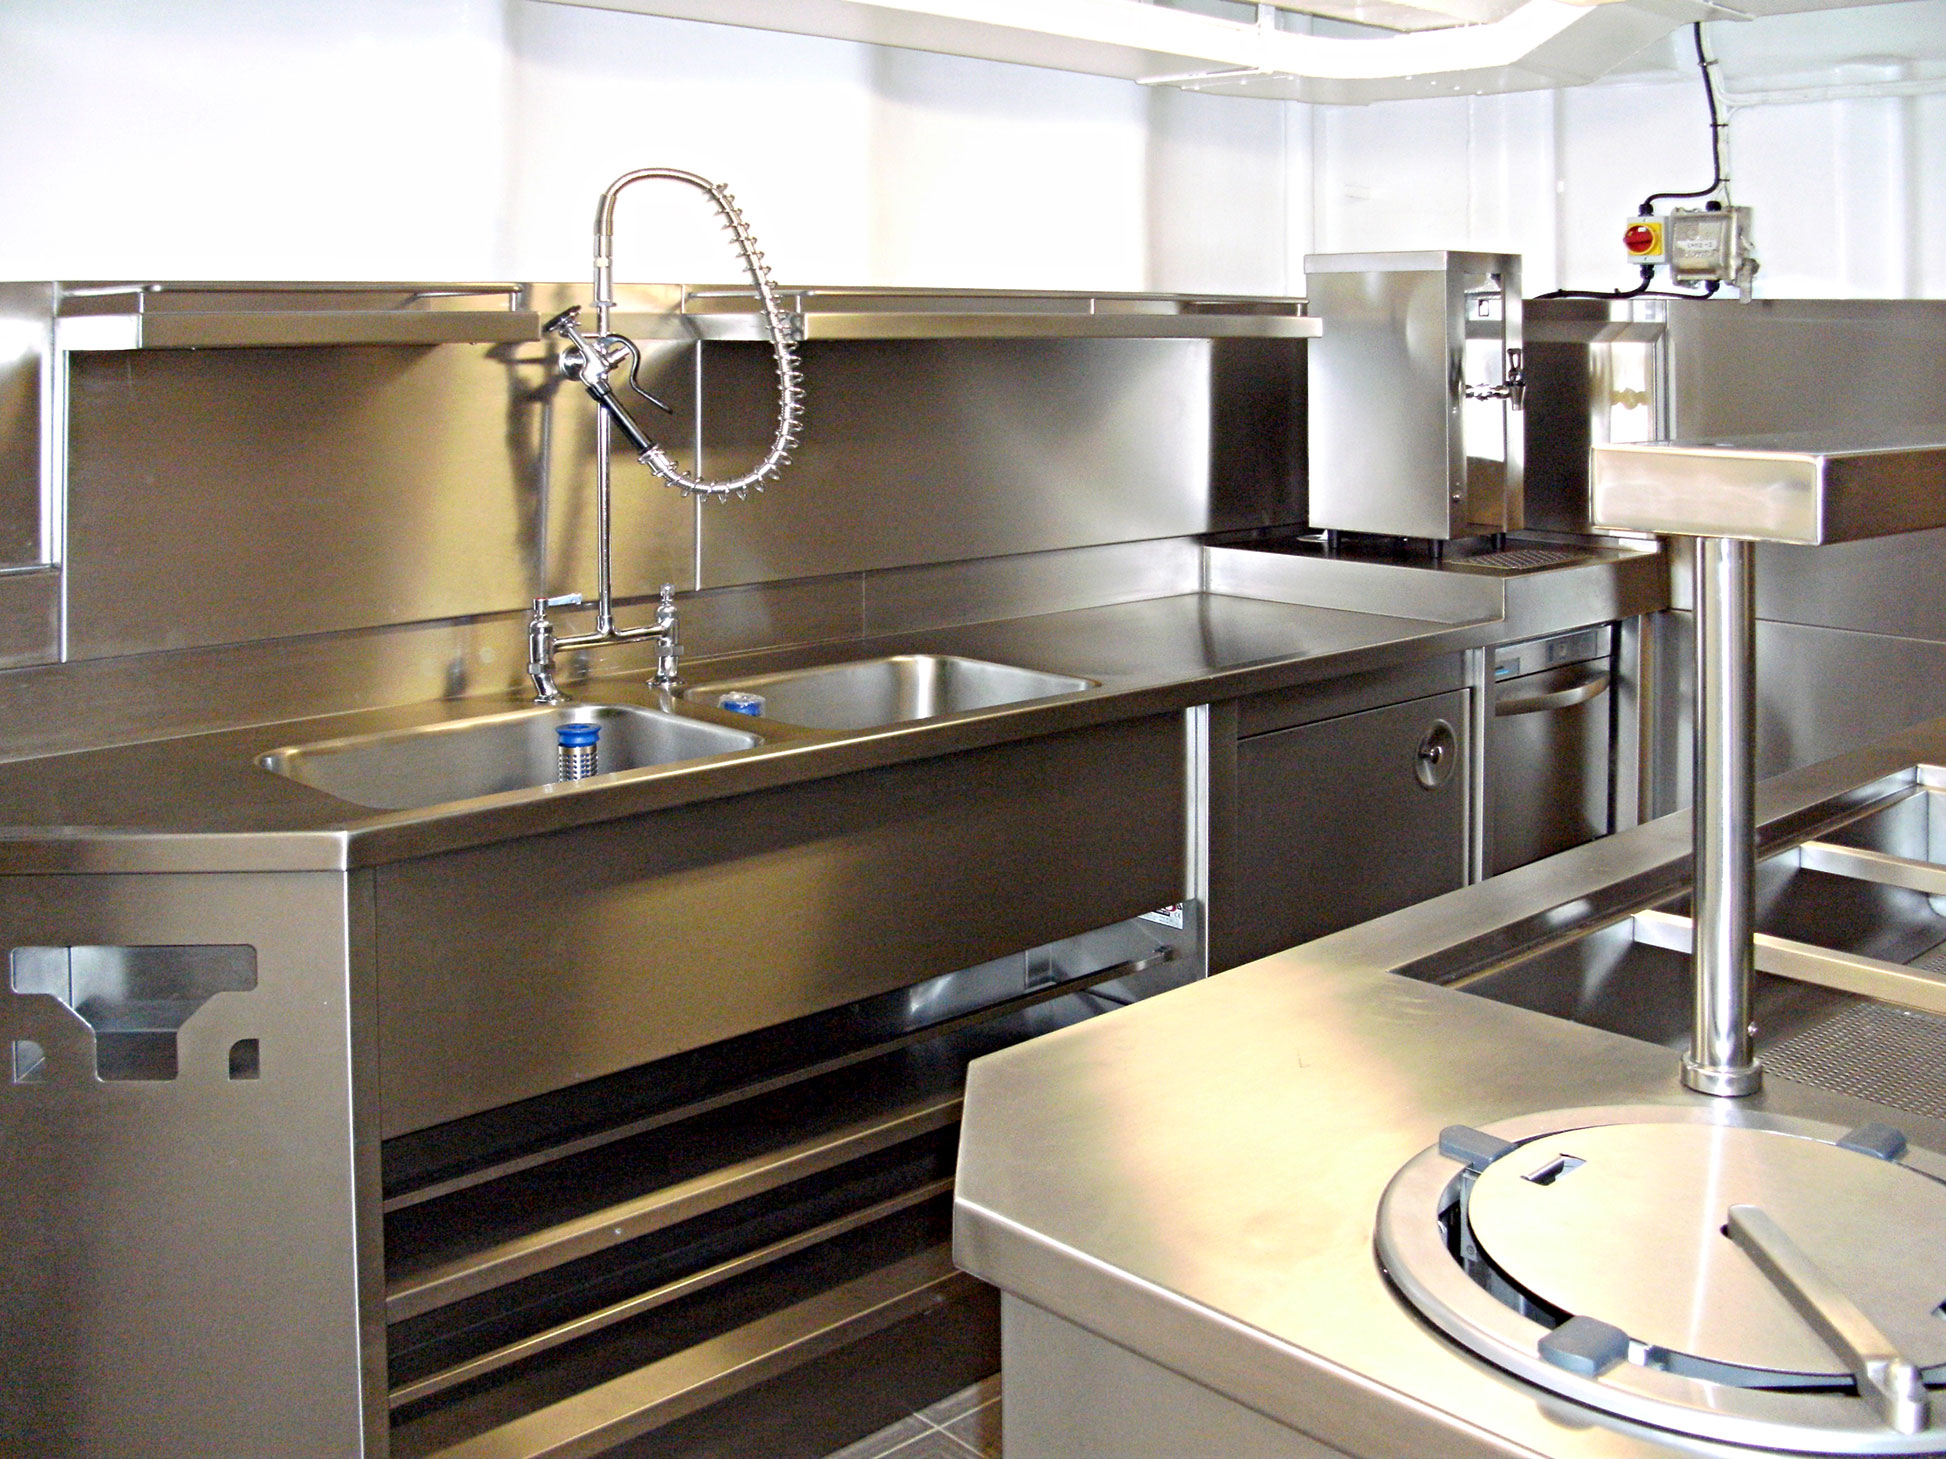 Food service solutions for Cruiseships and Offshore facilities